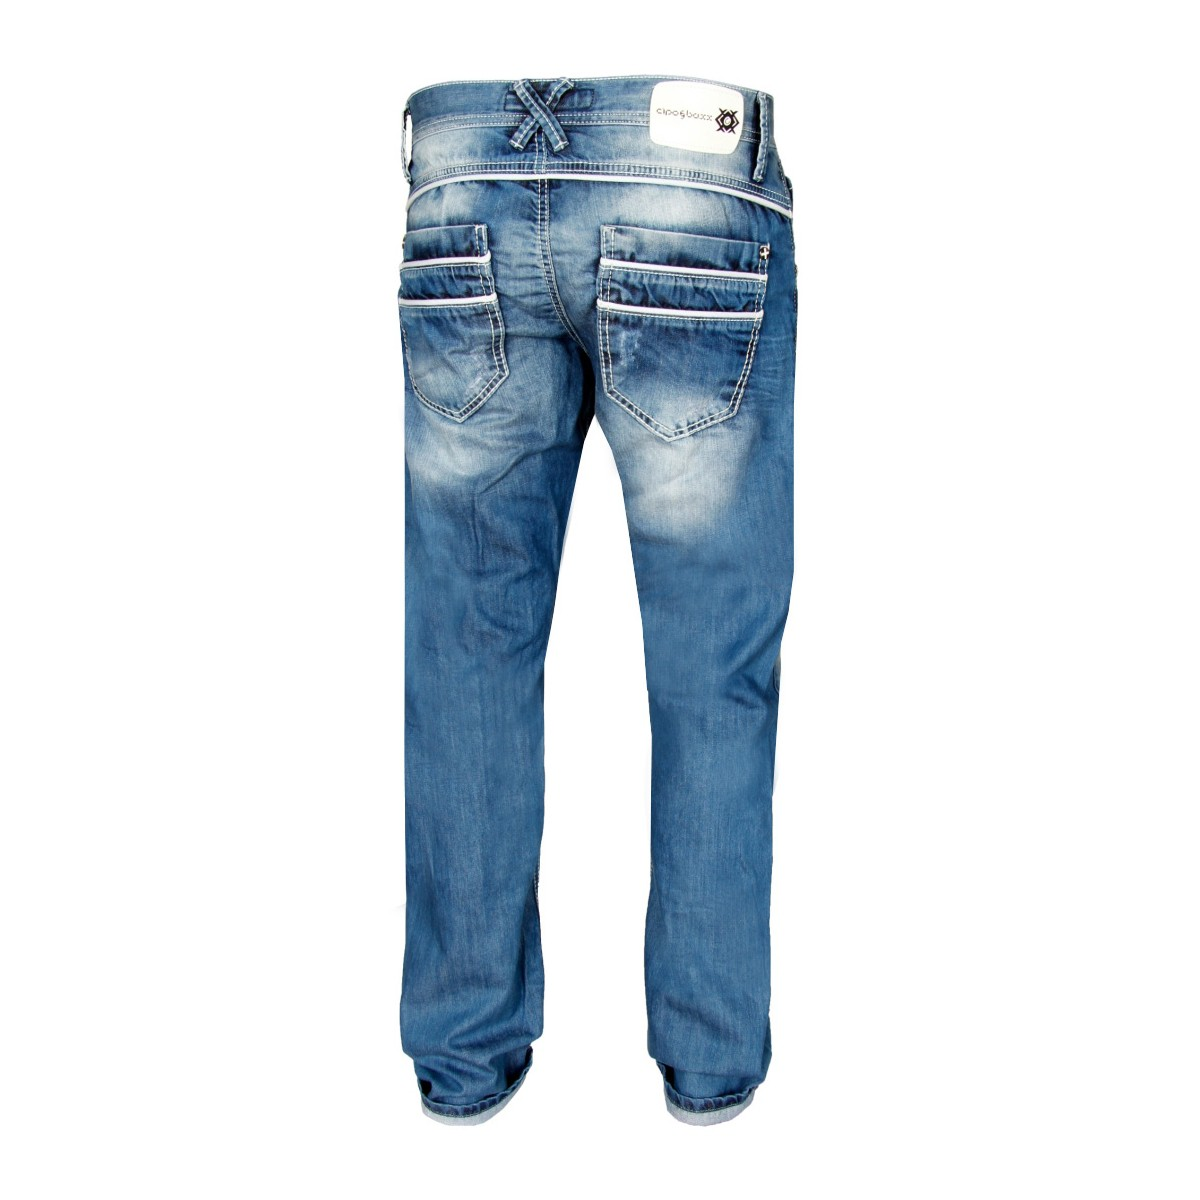 Cipo & Baxx Herren Jeans White Line - Regular Fit -  Blau